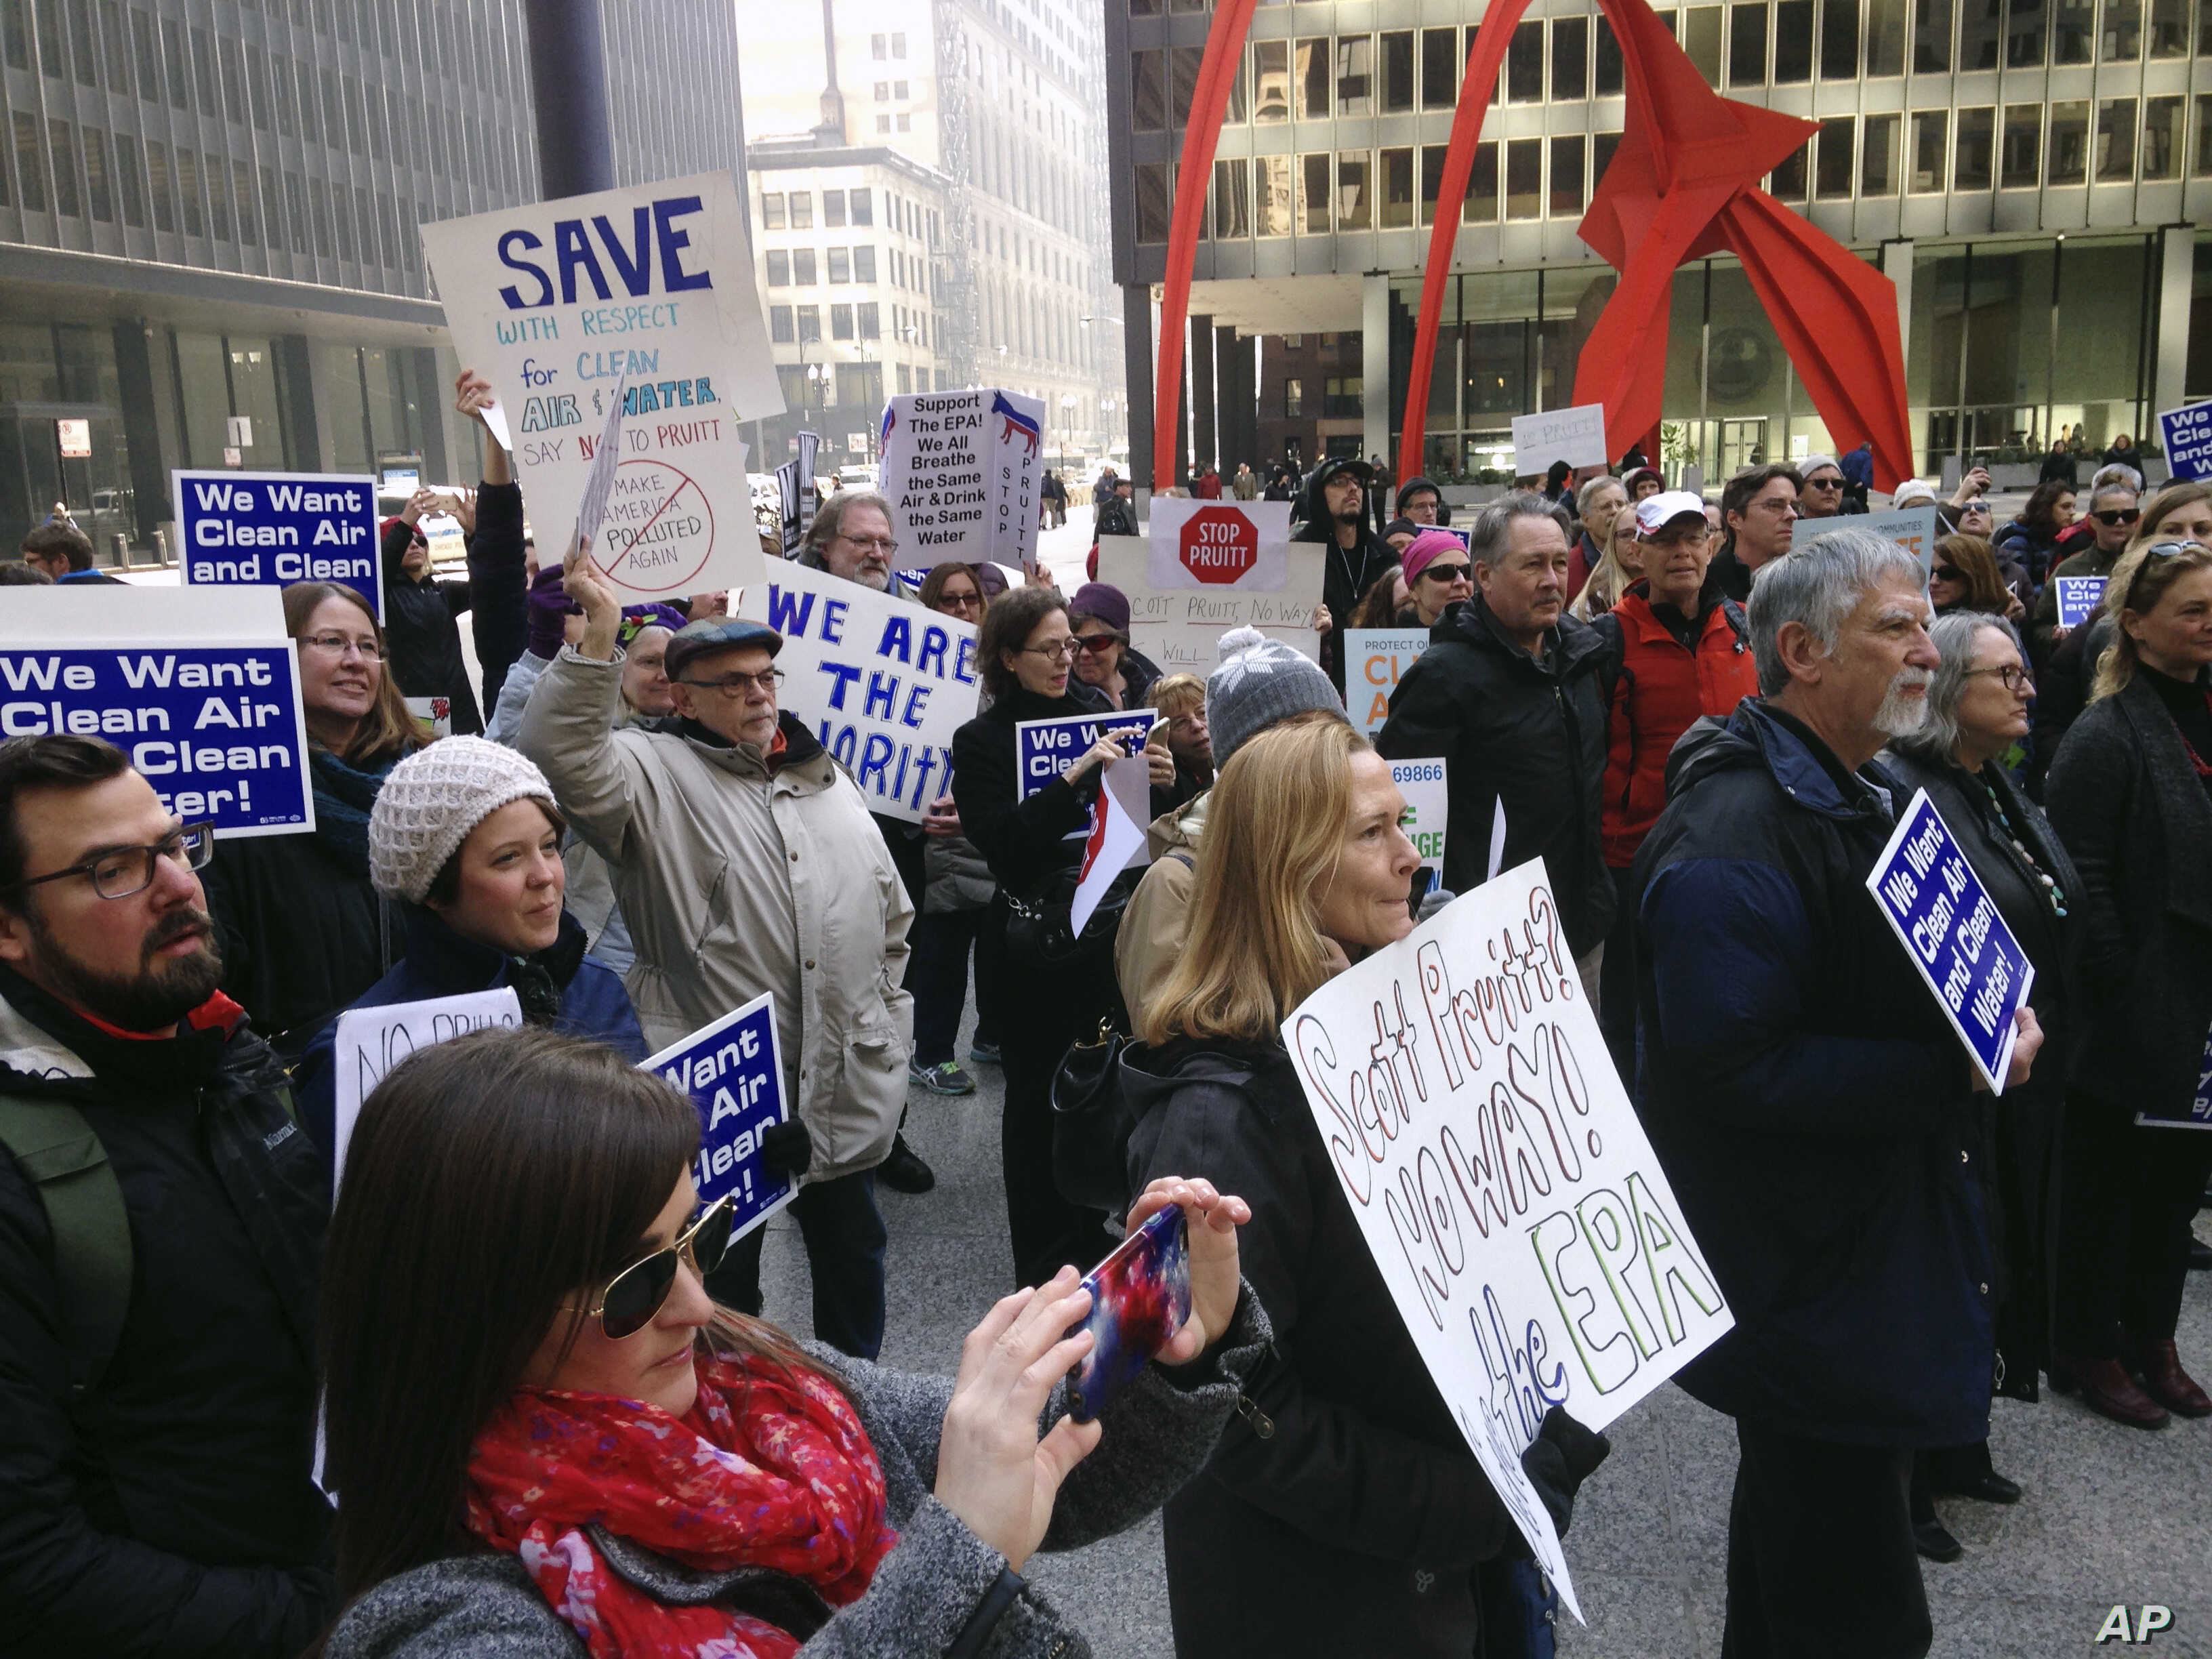 Environmental Protection Agency employees and environmental activists gather in Chicago, Feb. 6, 2017, to protest the nomination of Scott Pruitt for administrator of the agency.